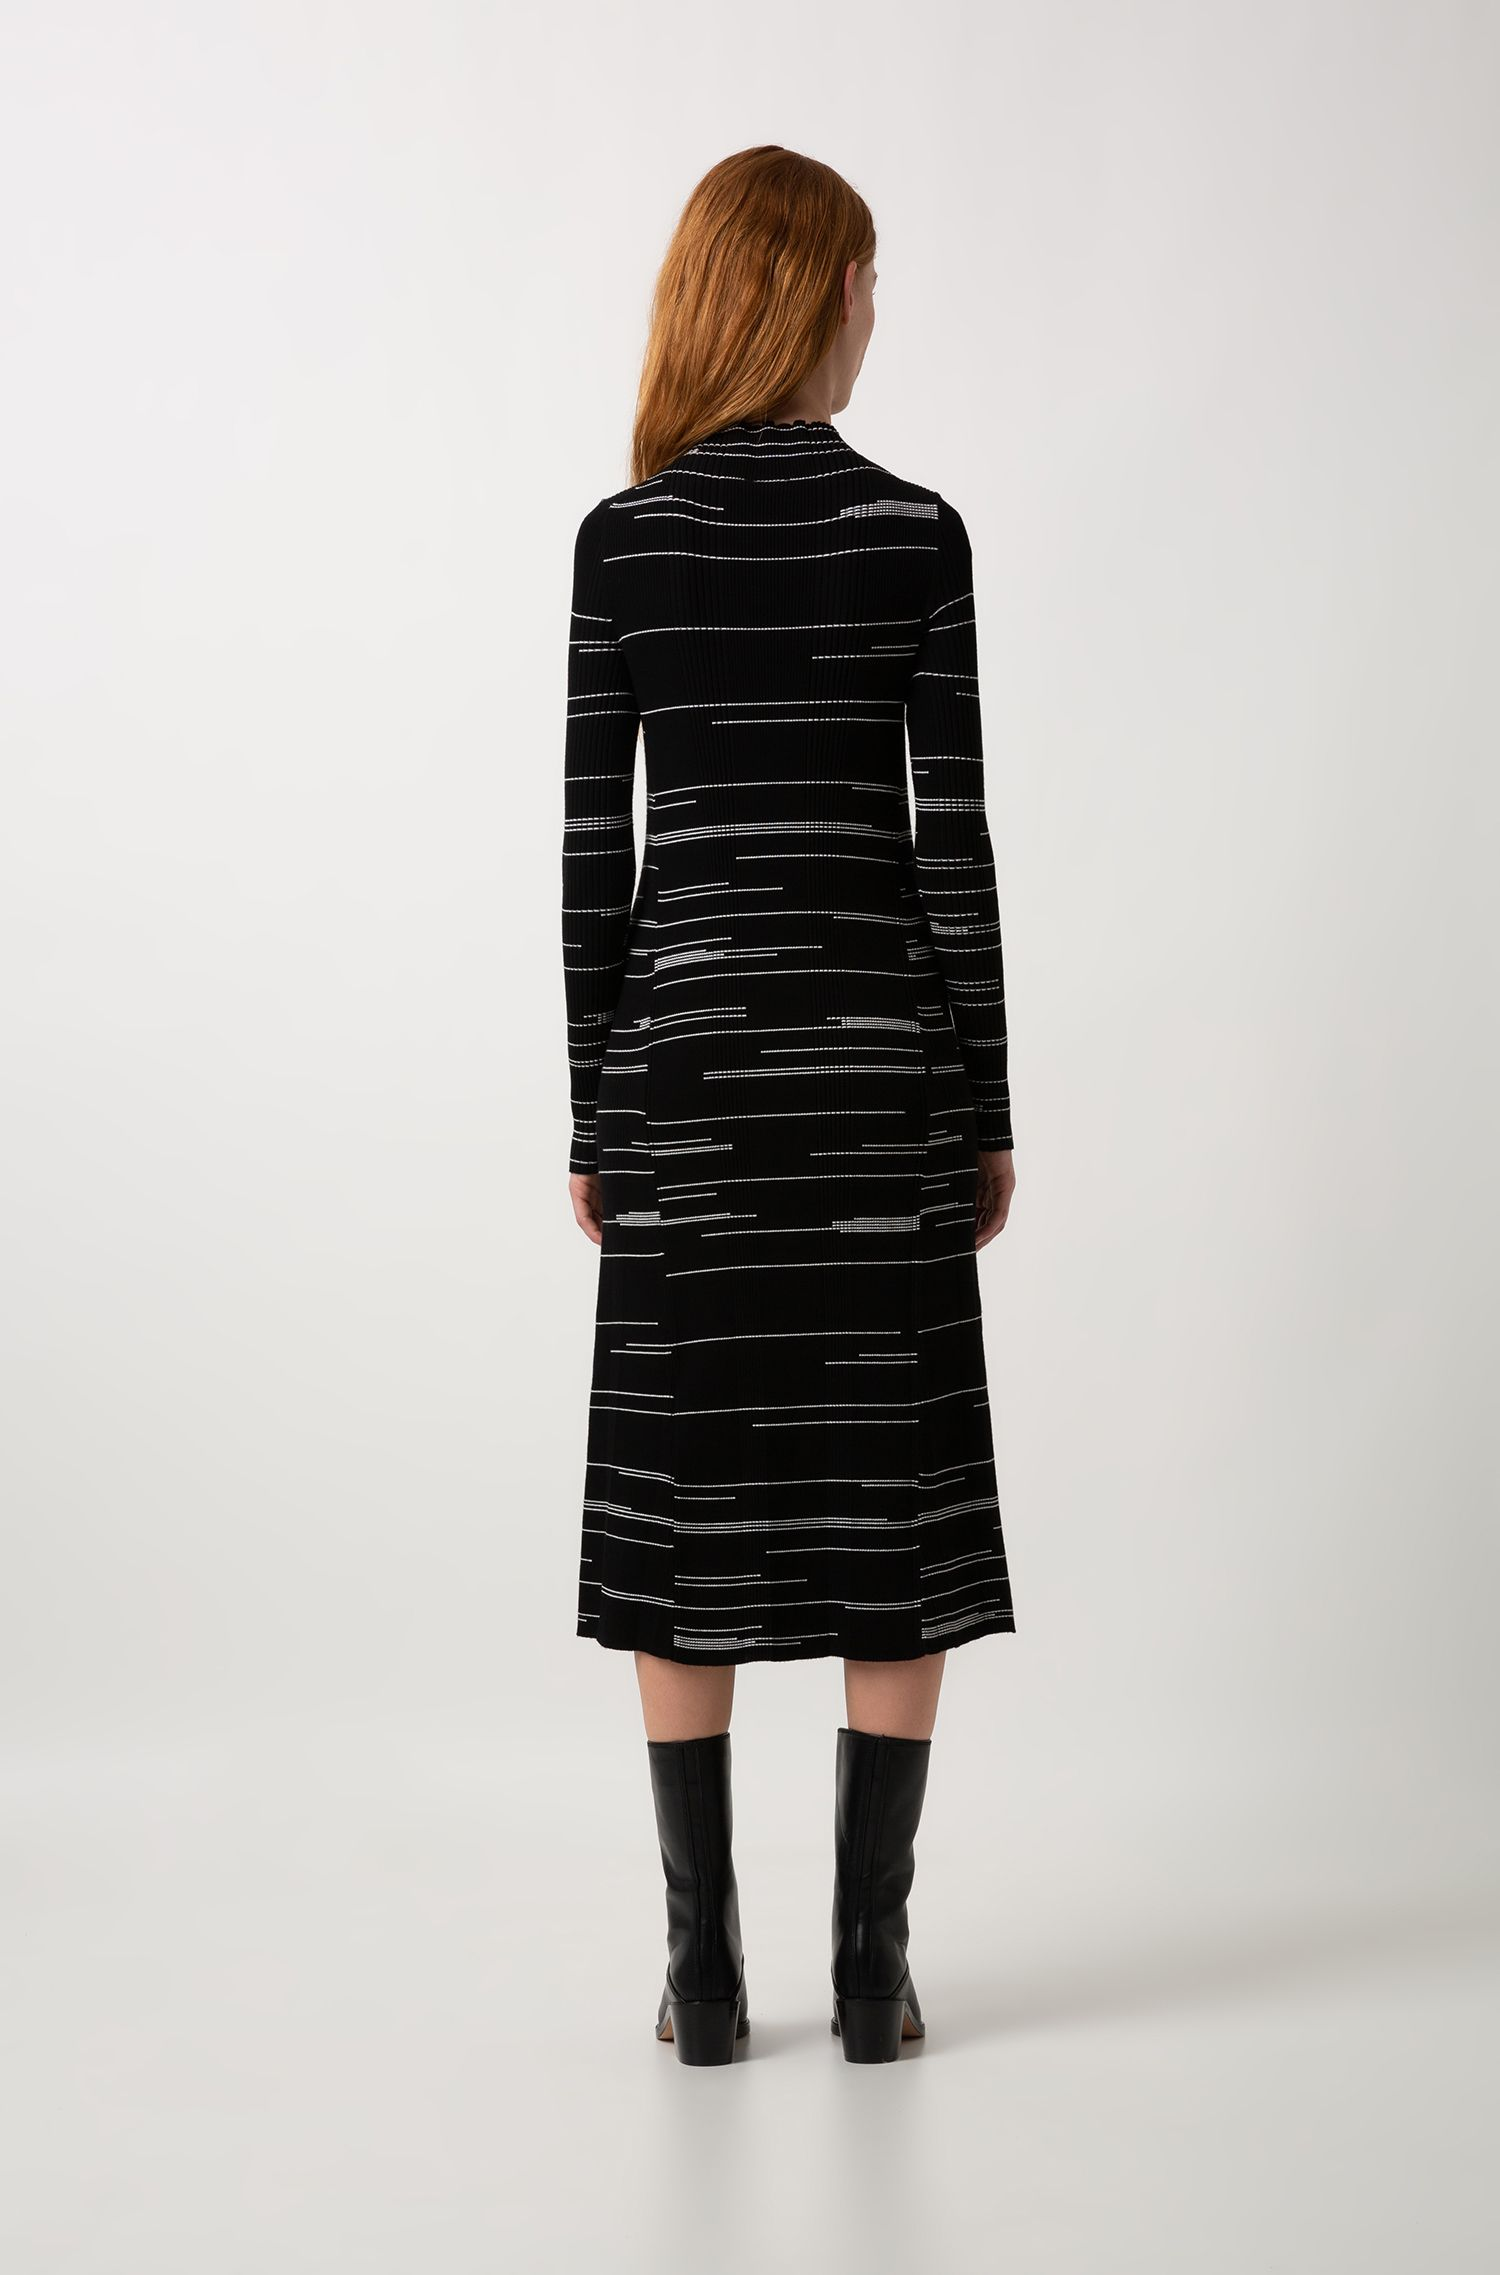 Slim-fit dress in stretch fabric with irregular lines, Patterned